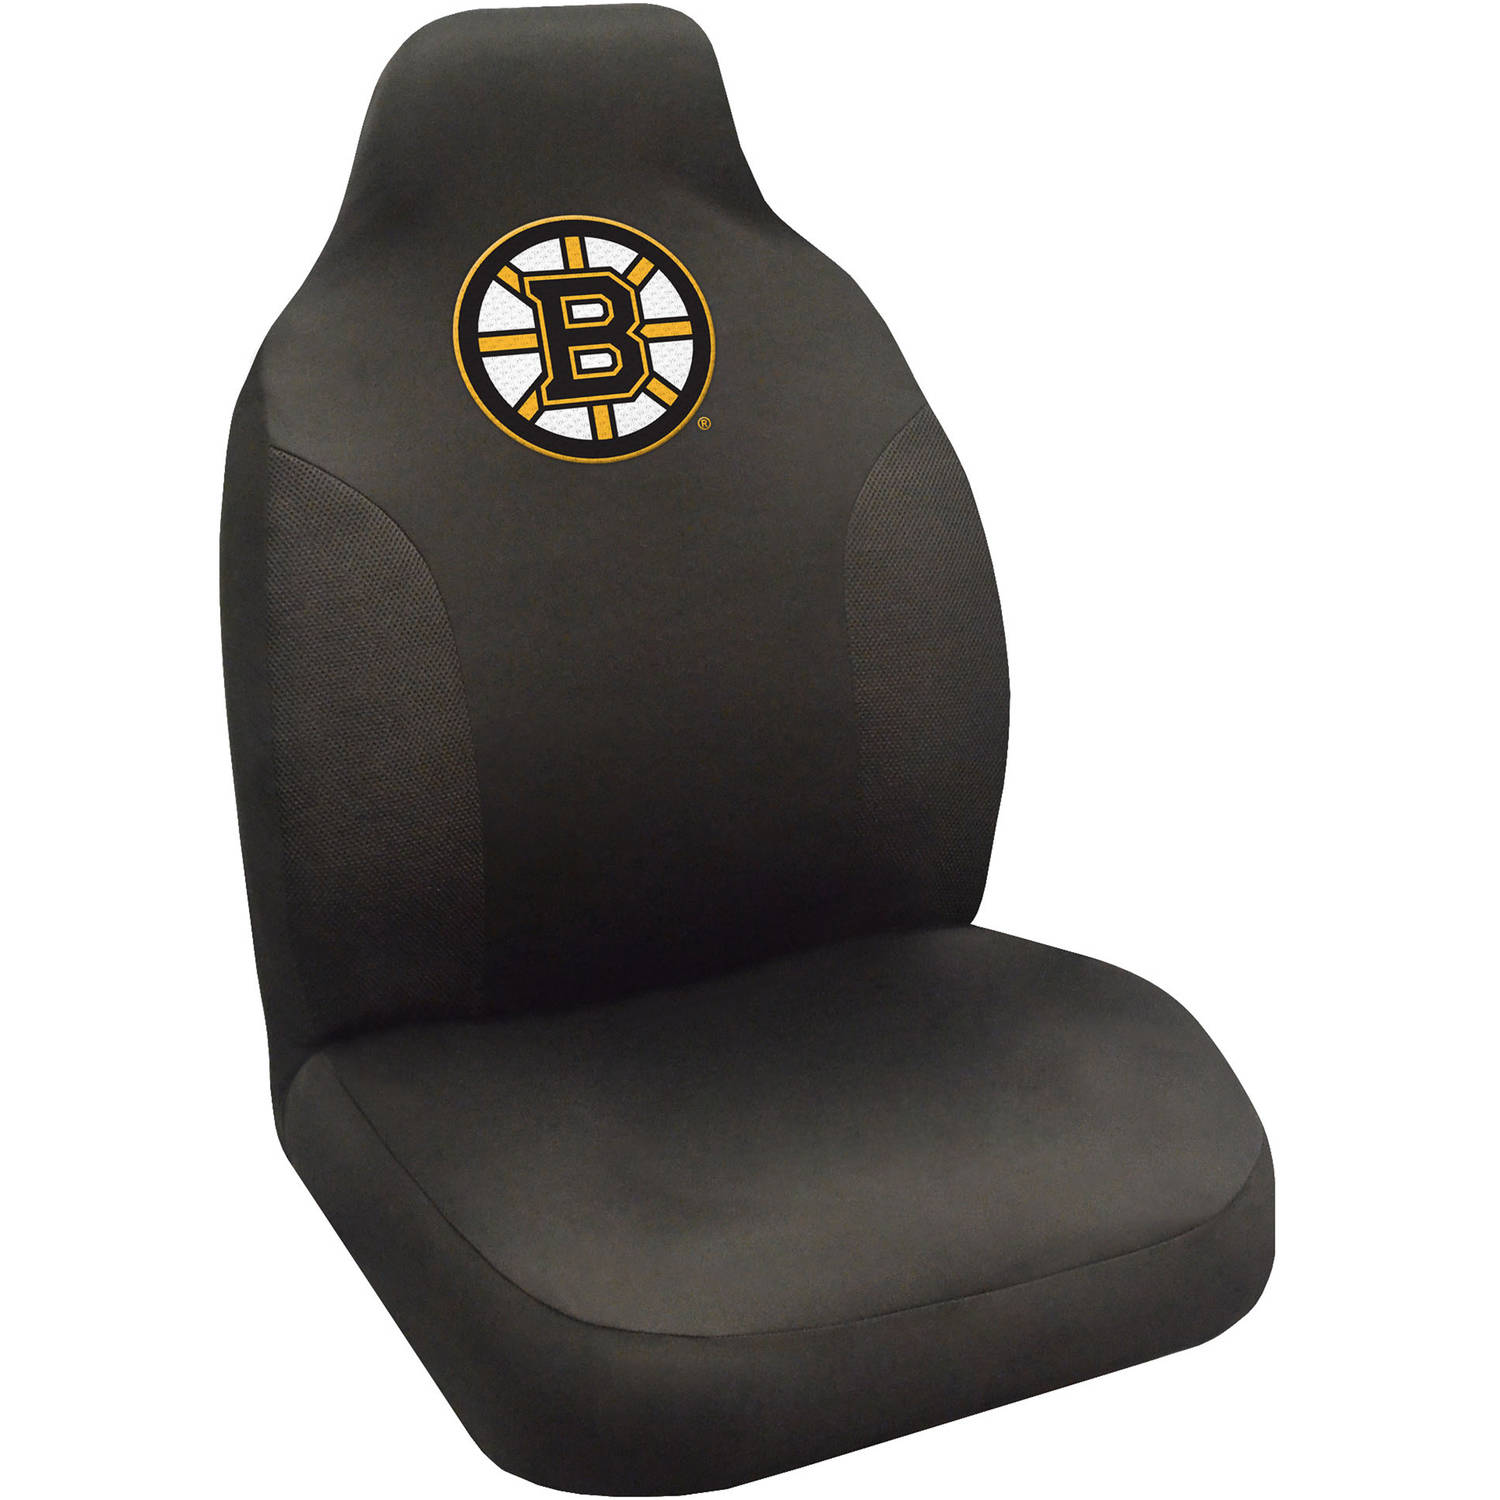 NHL Boston Bruins Seat Covers